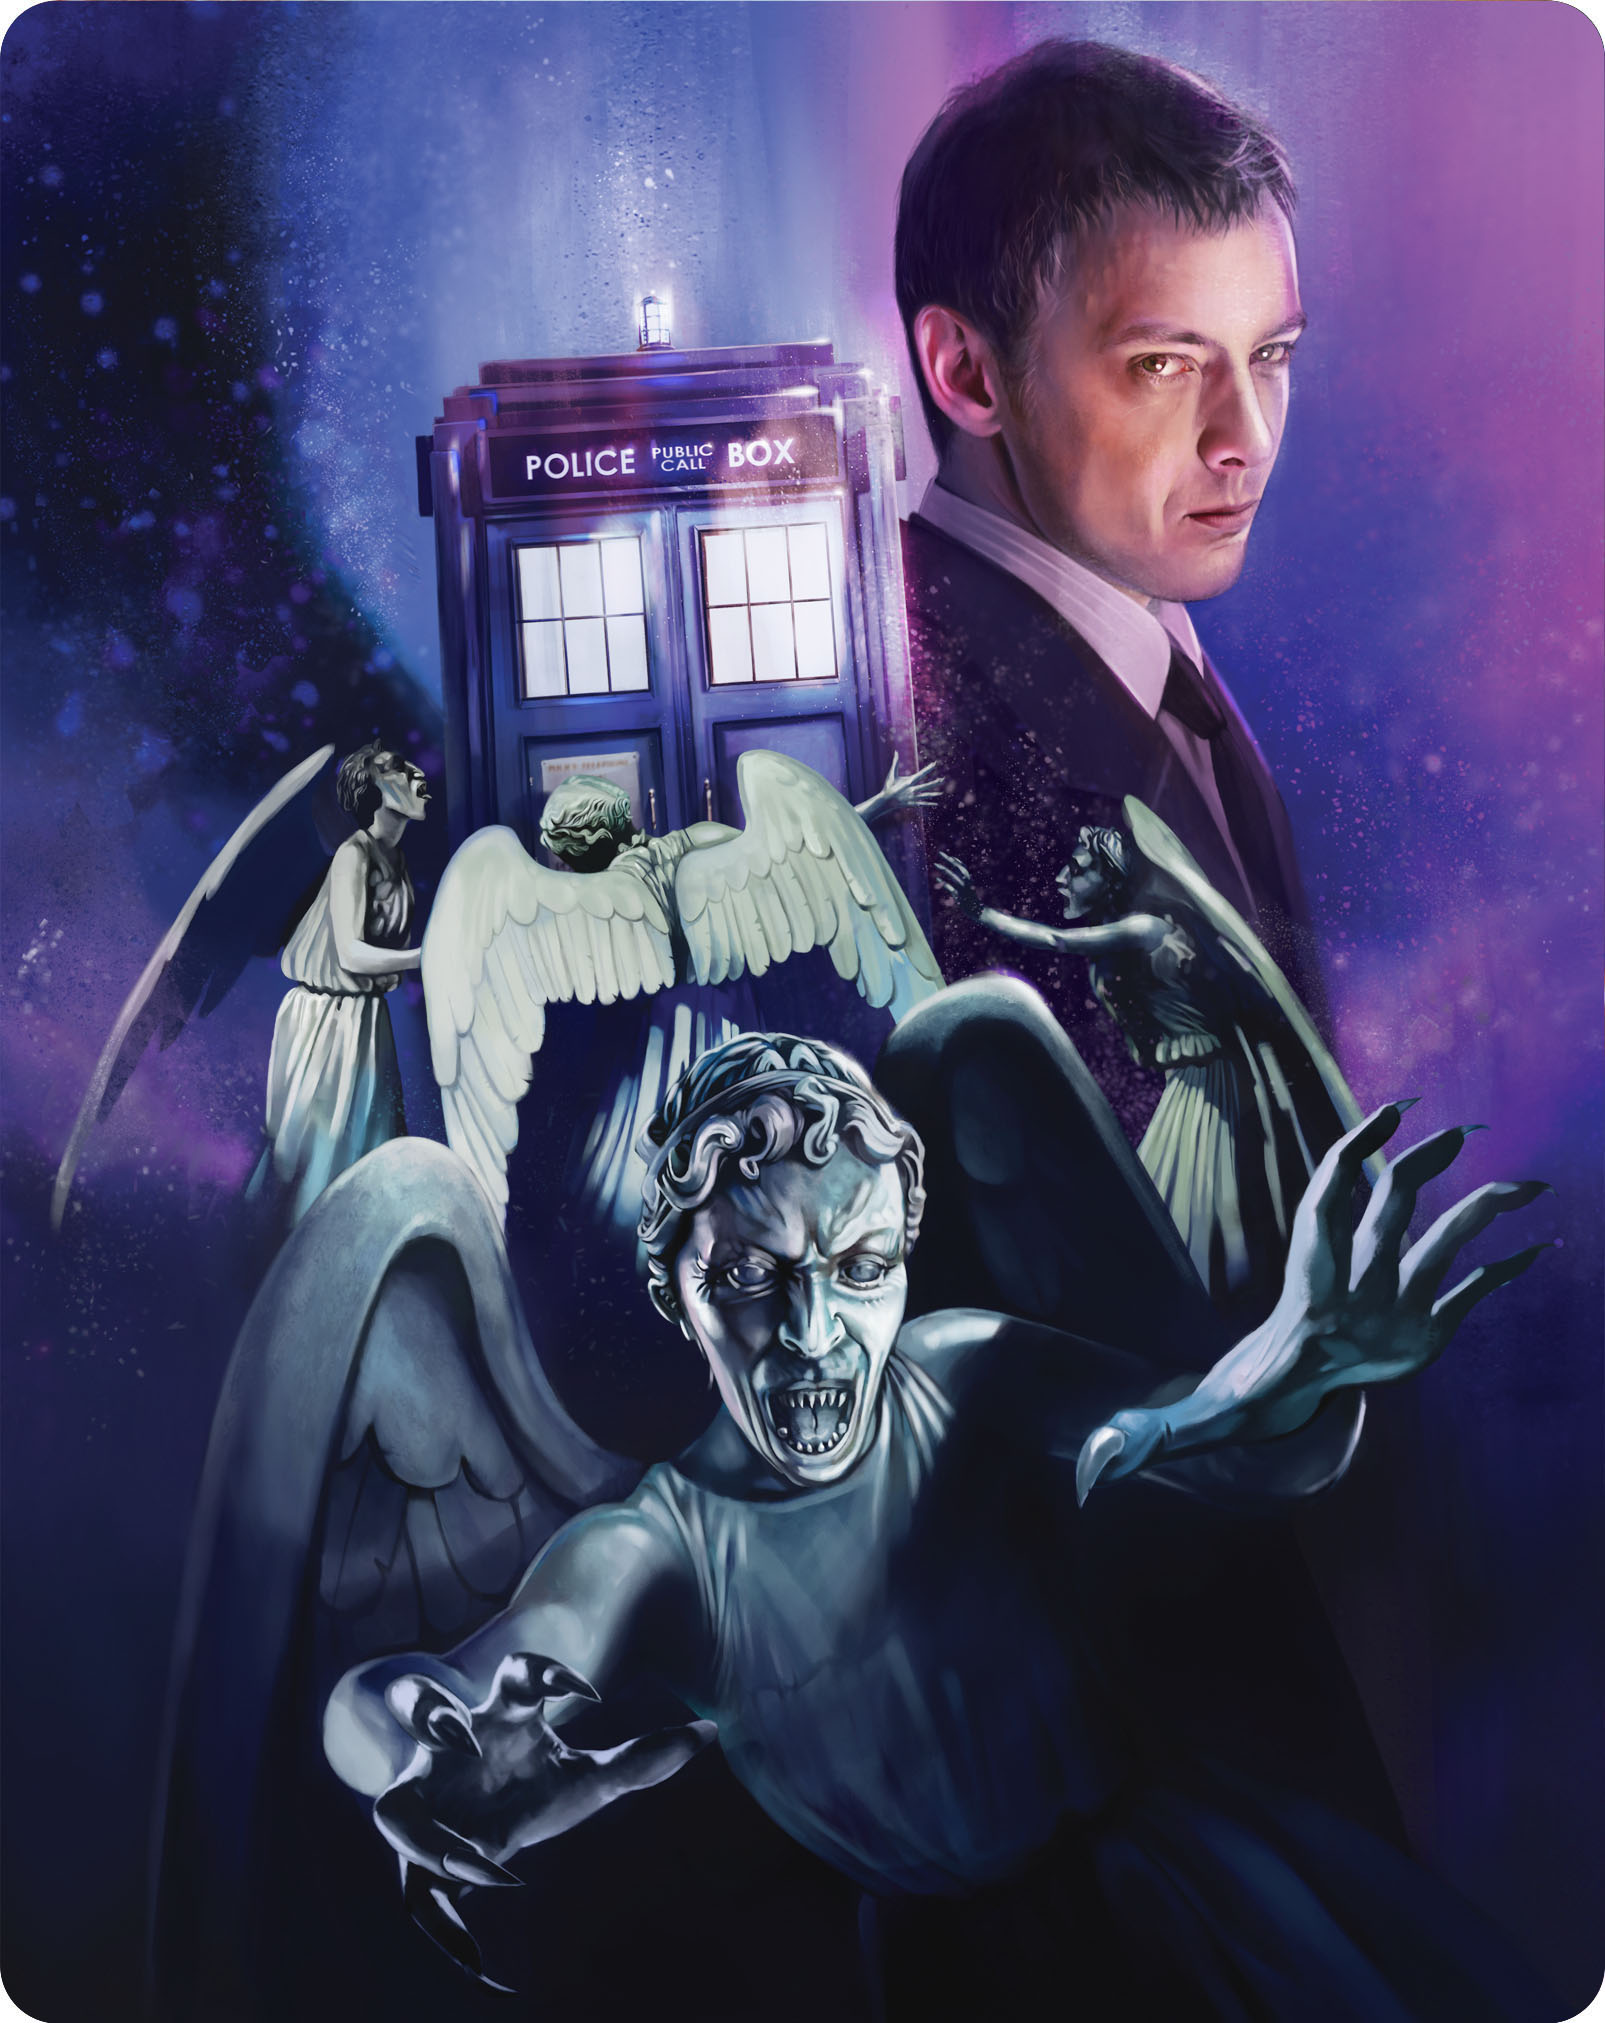 Doctor Who - Series 3 Steelbook - Back Cover (blu-ray) (Credit: BBC Worldwide)